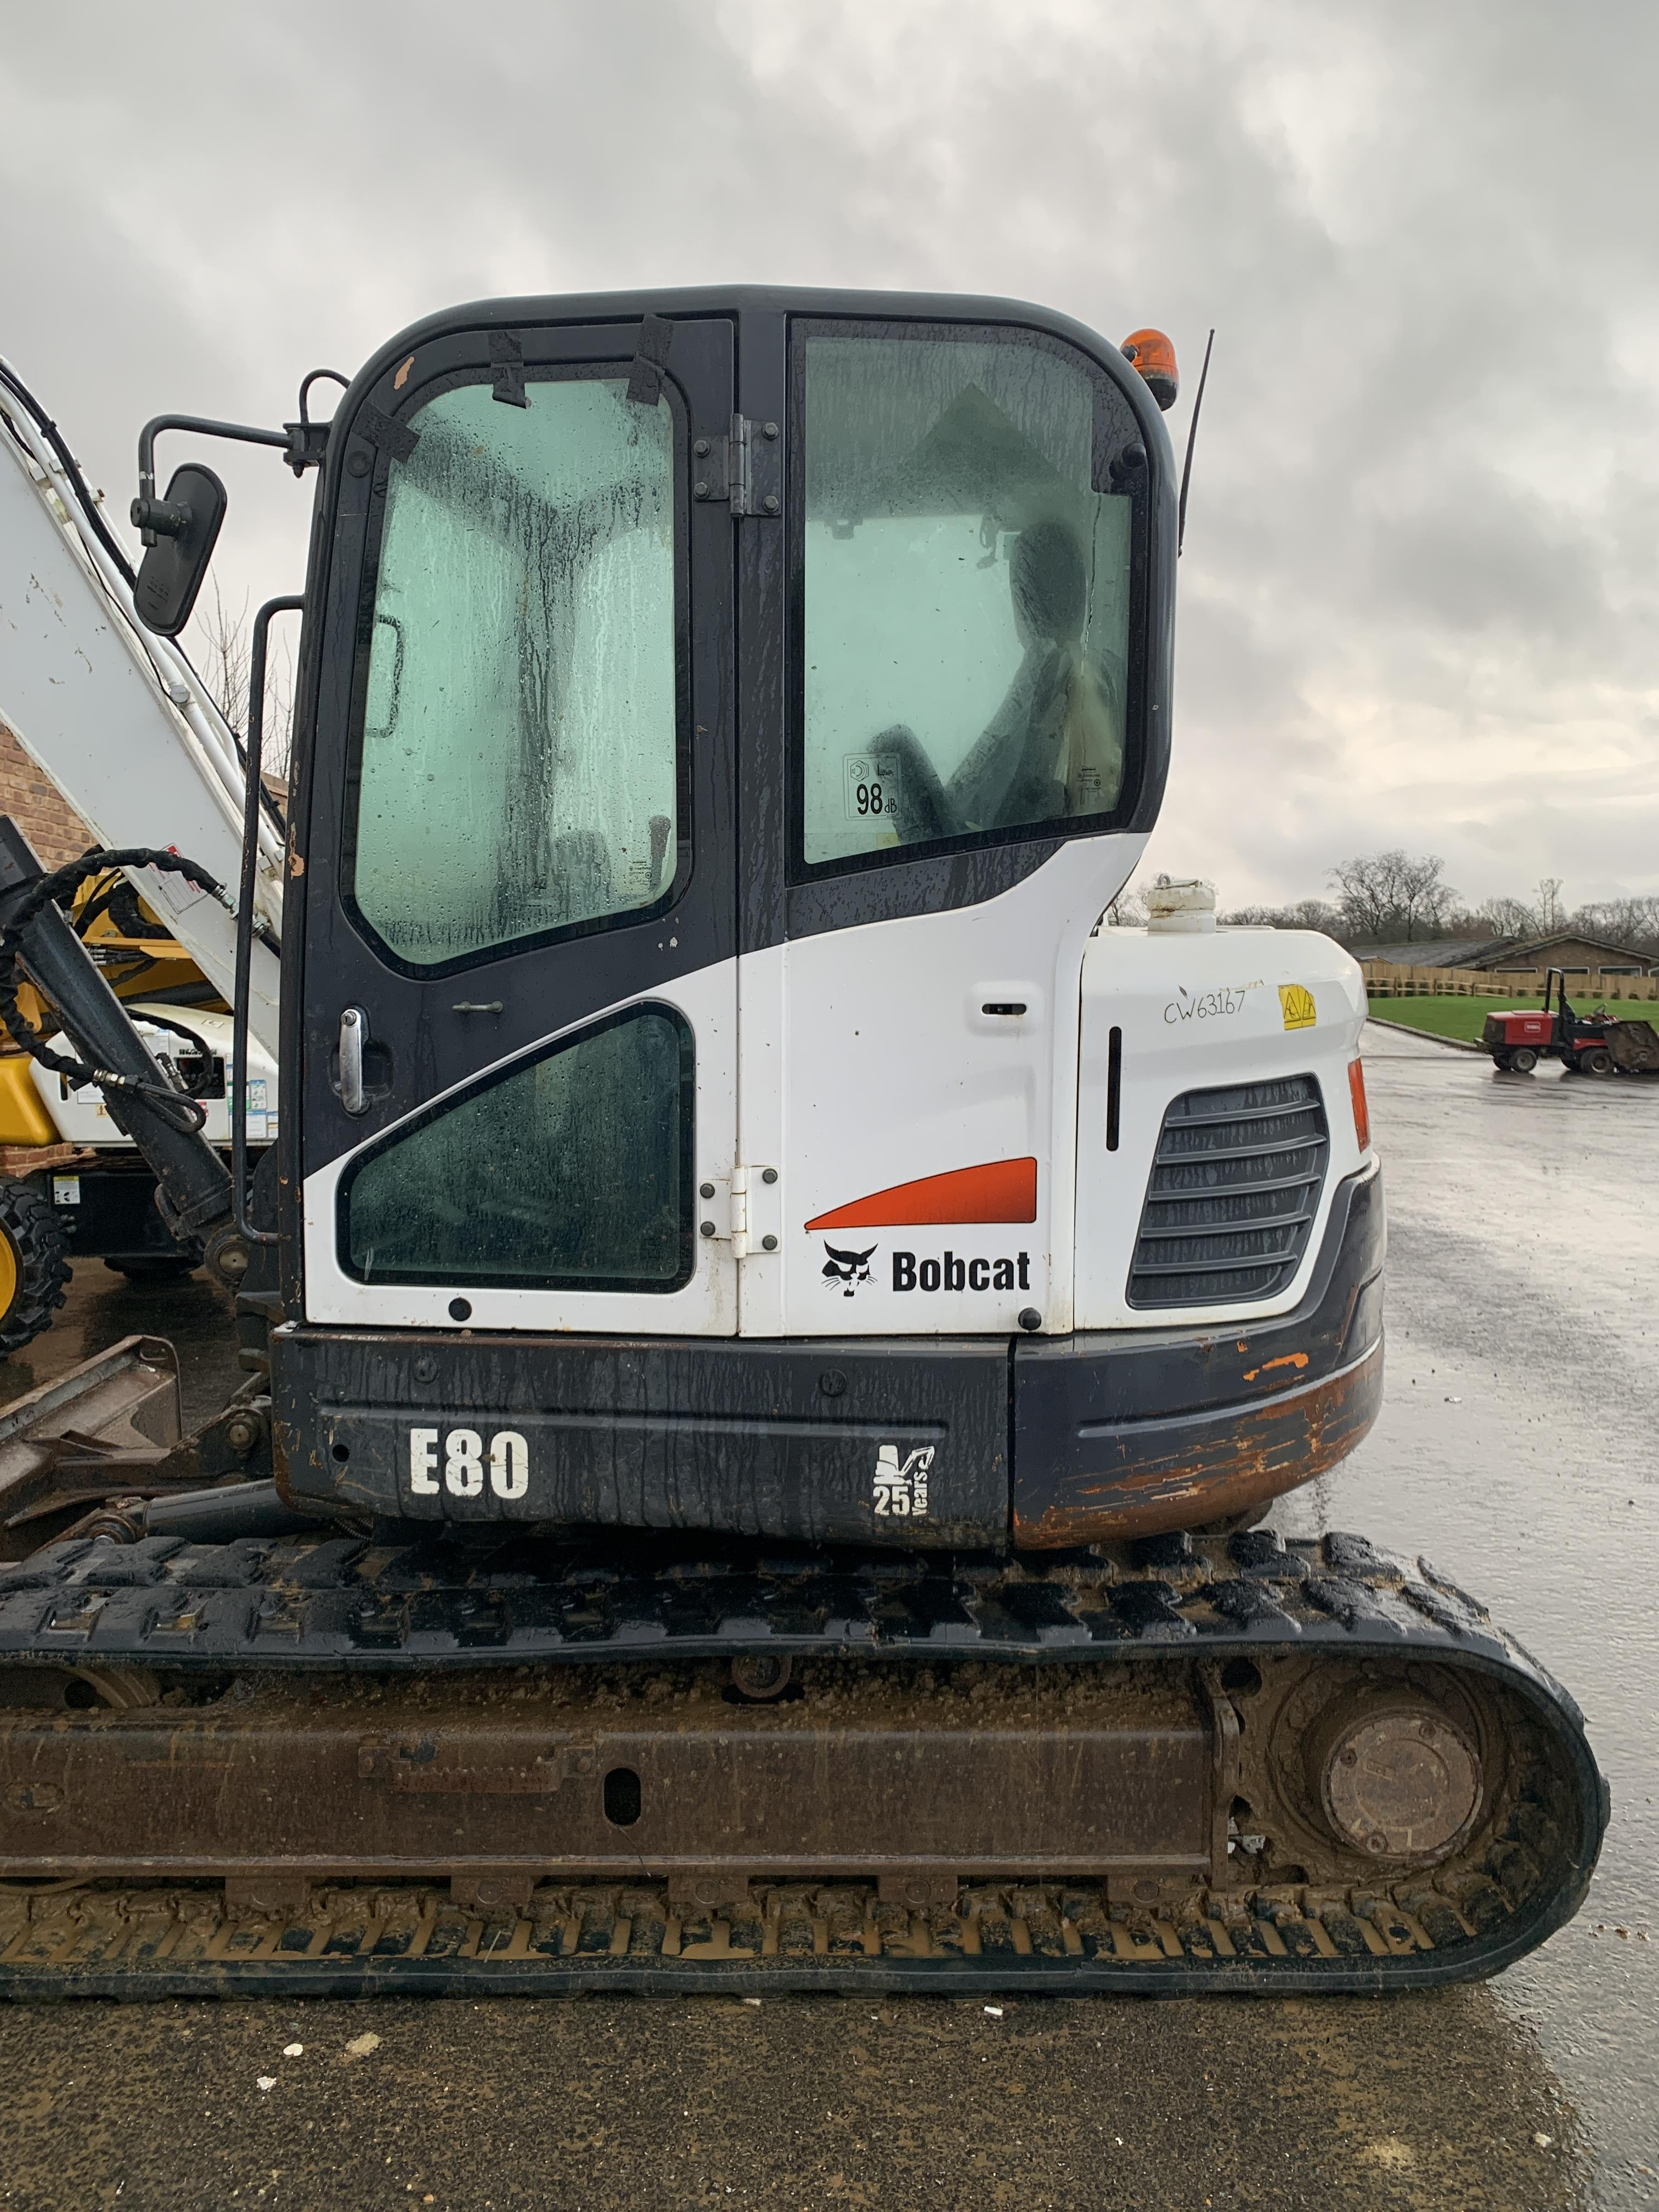 BOBCAT E80 TRACKED CRAWLER EXCAVATOR / DIGGER, C/W HYDRAULIC THUMB, YEAR 2012, RUNS, WORKS AND DIGS - Image 3 of 7